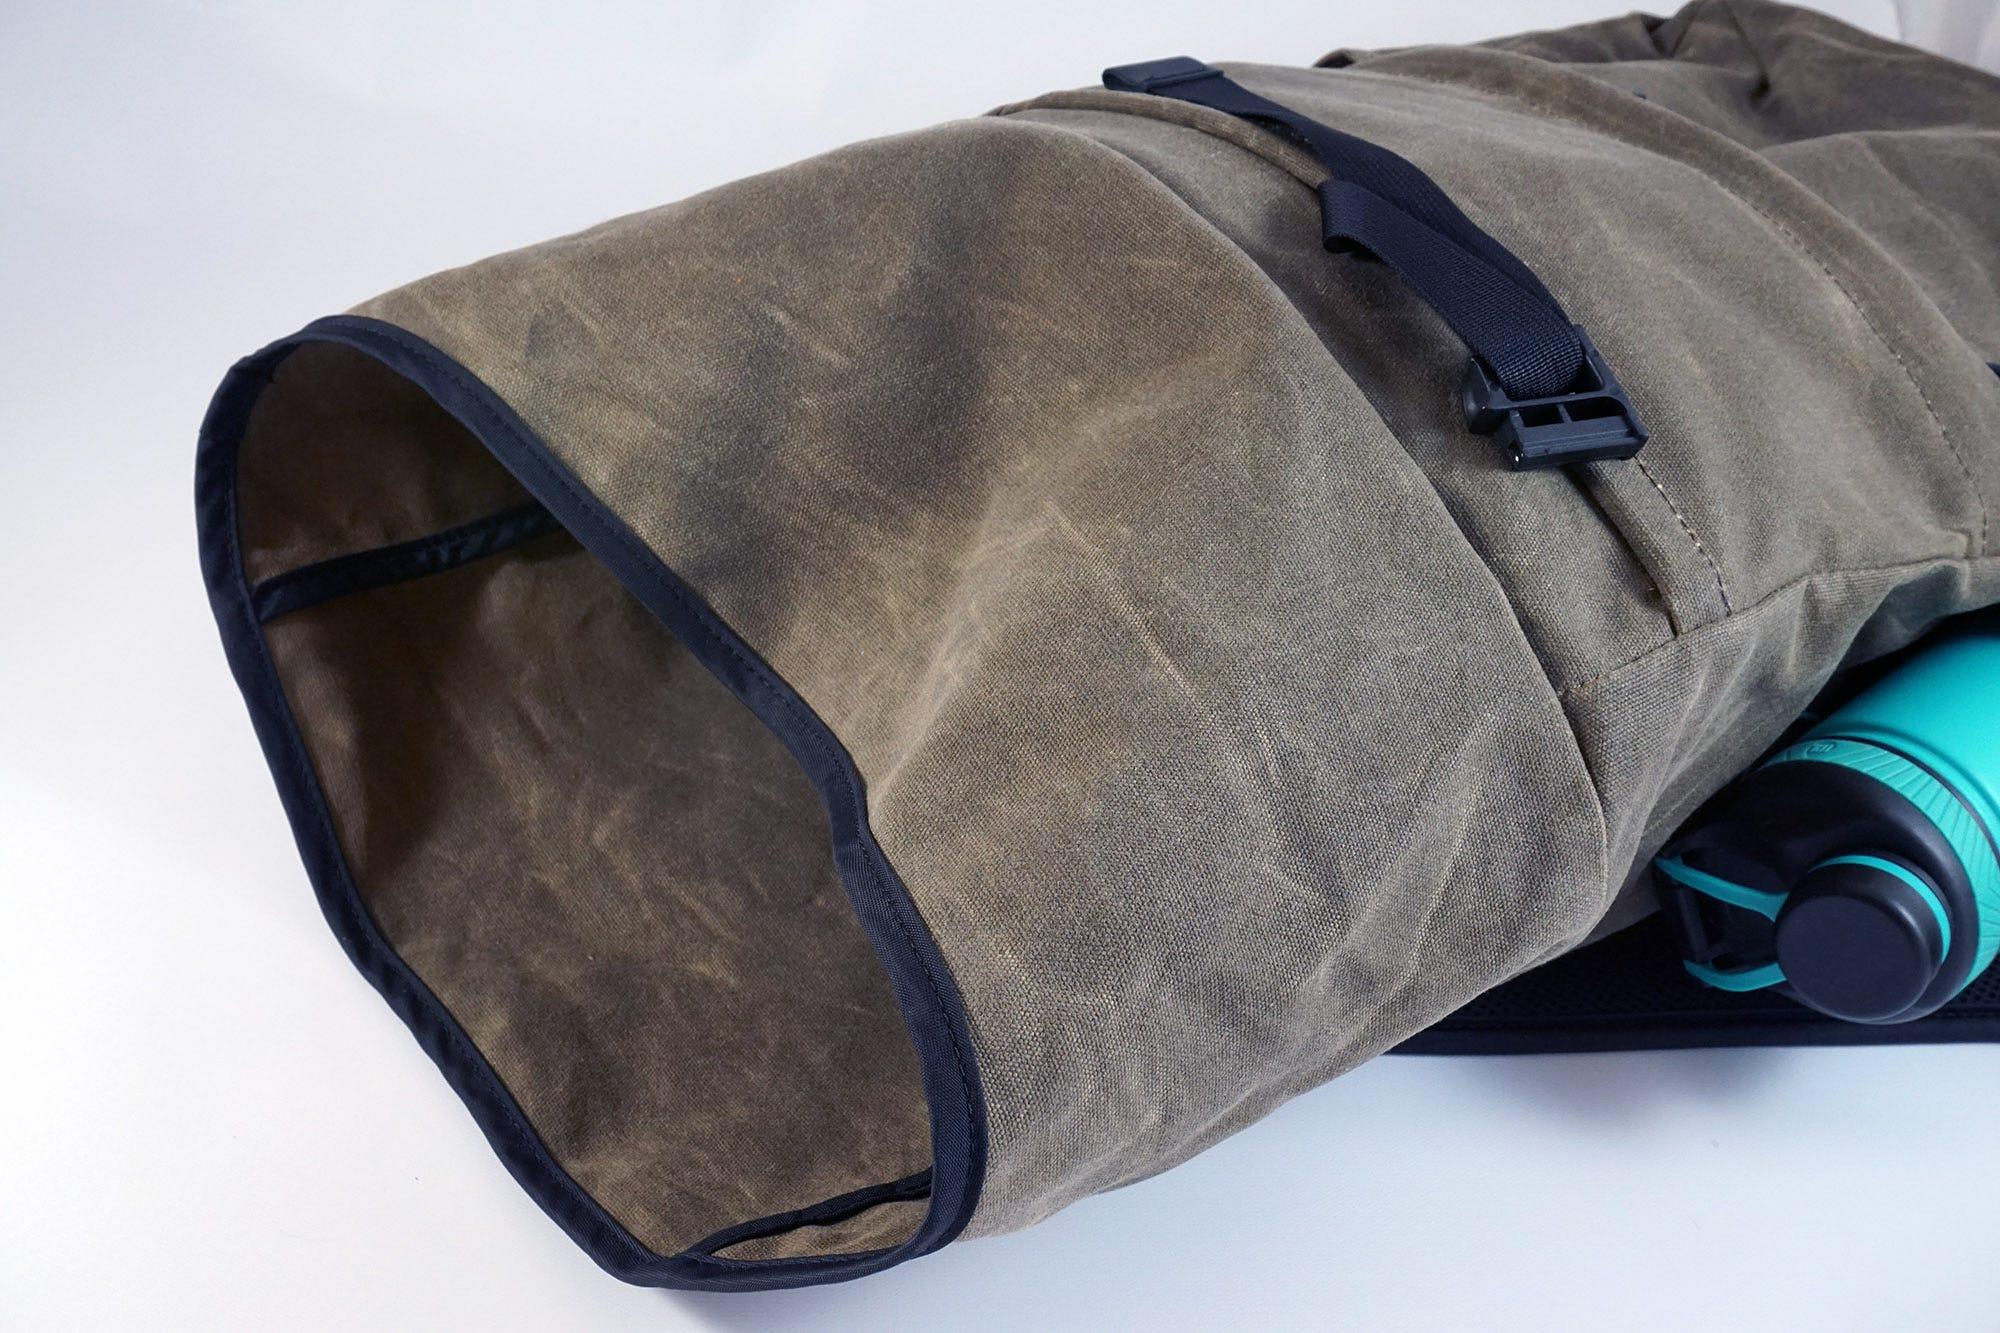 The bag rolls out for a massive maximum capacity of 15 liters.